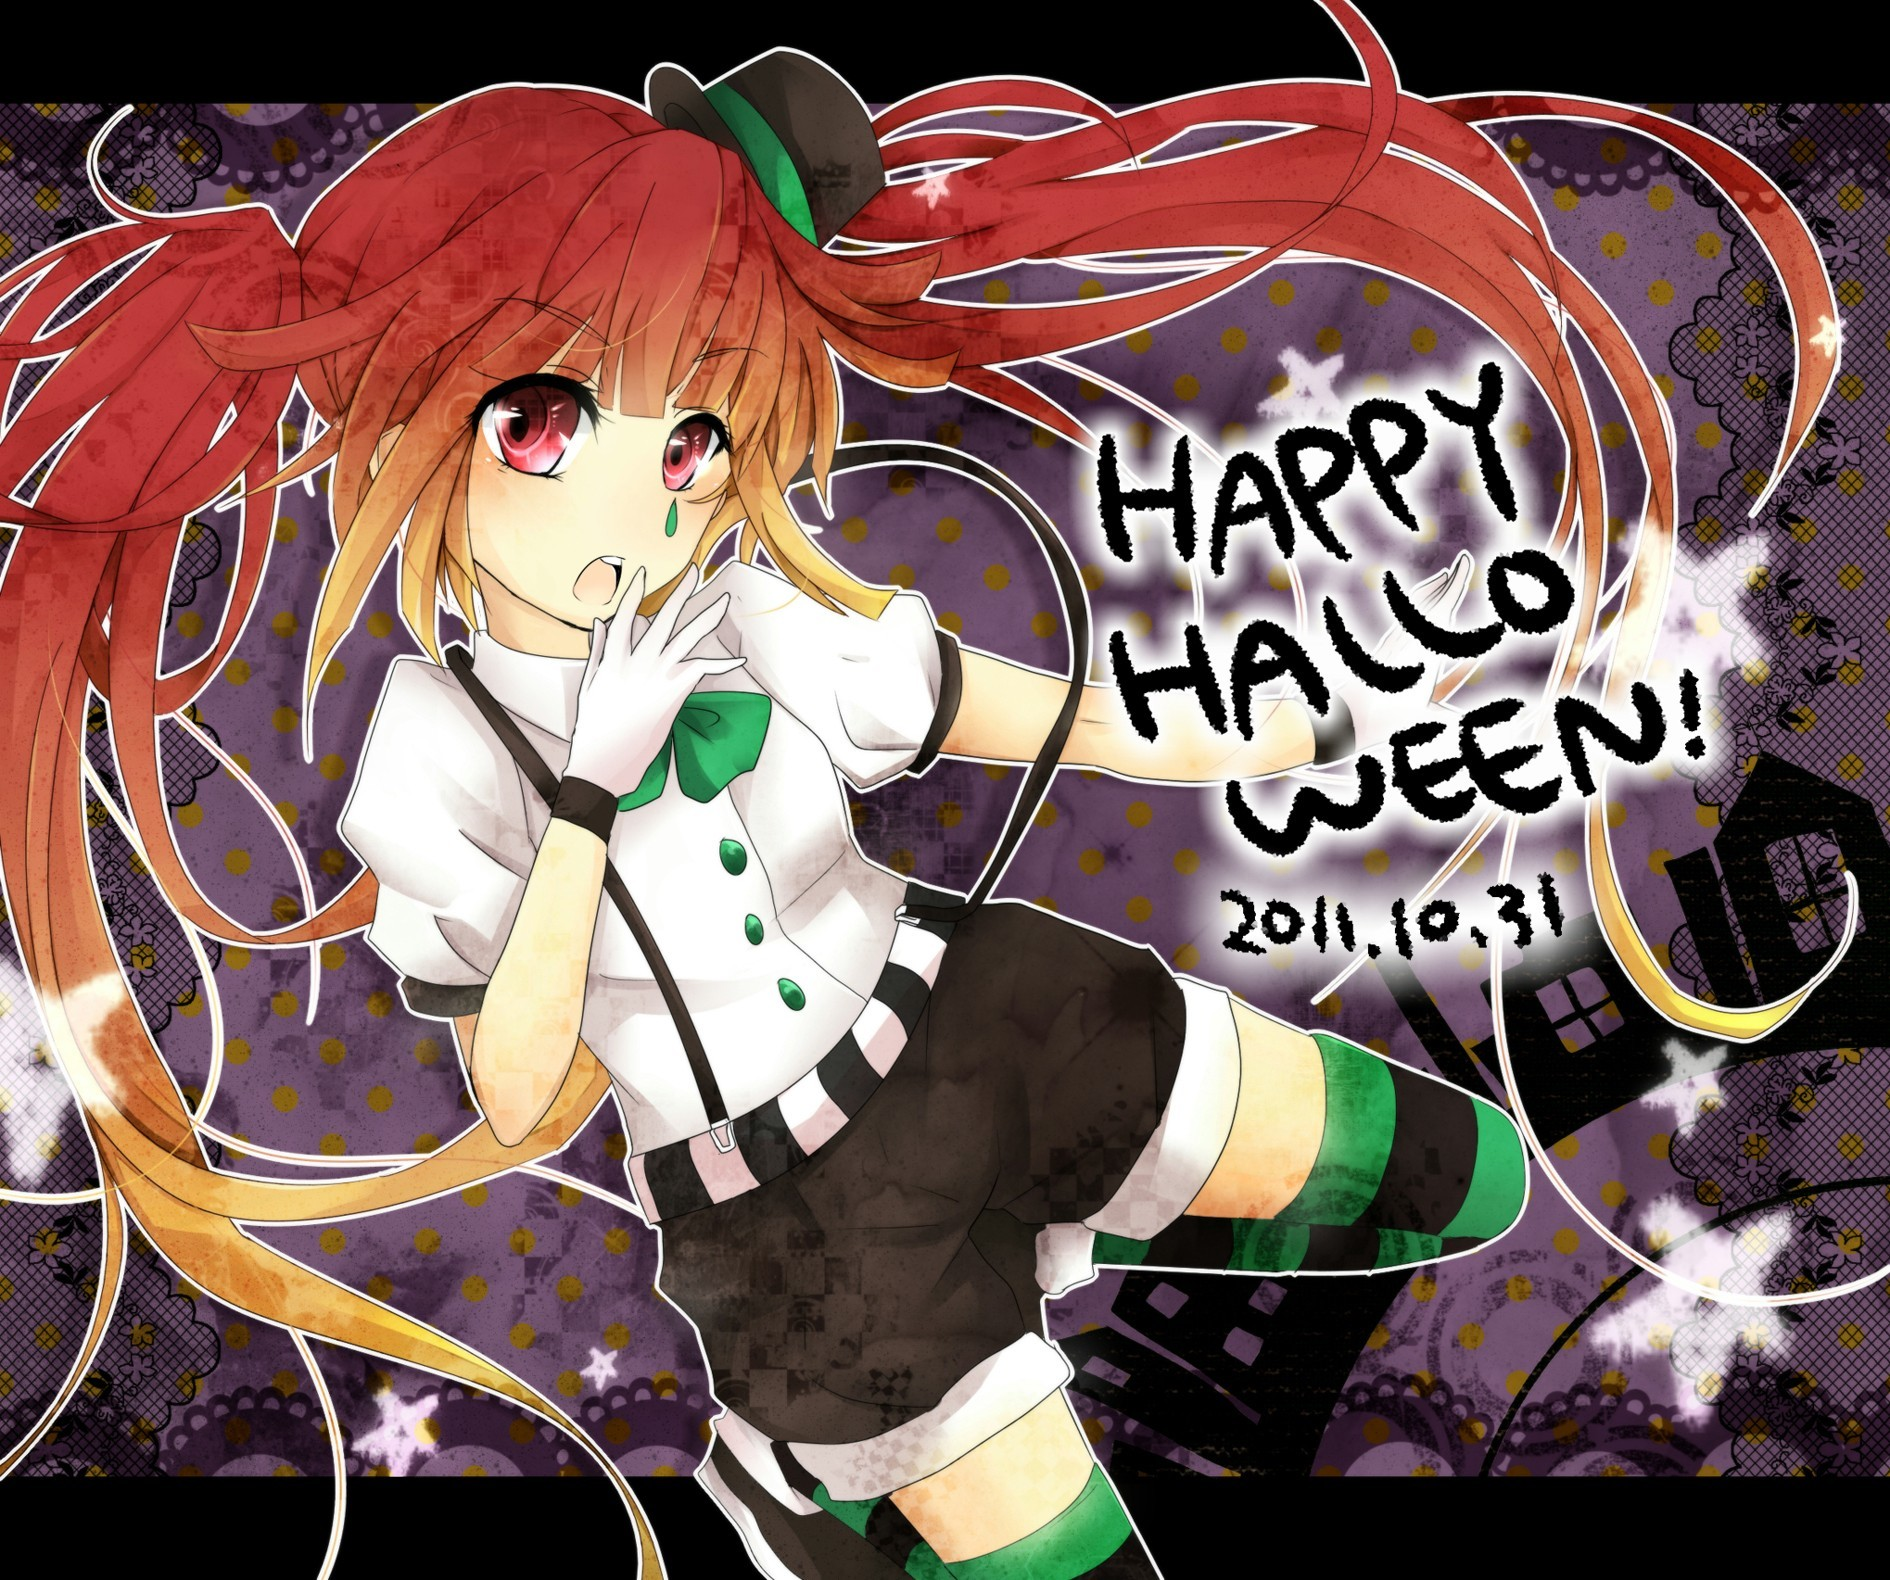 Halloween hatsune miku vocaloid striped legwear HD Wallpaper